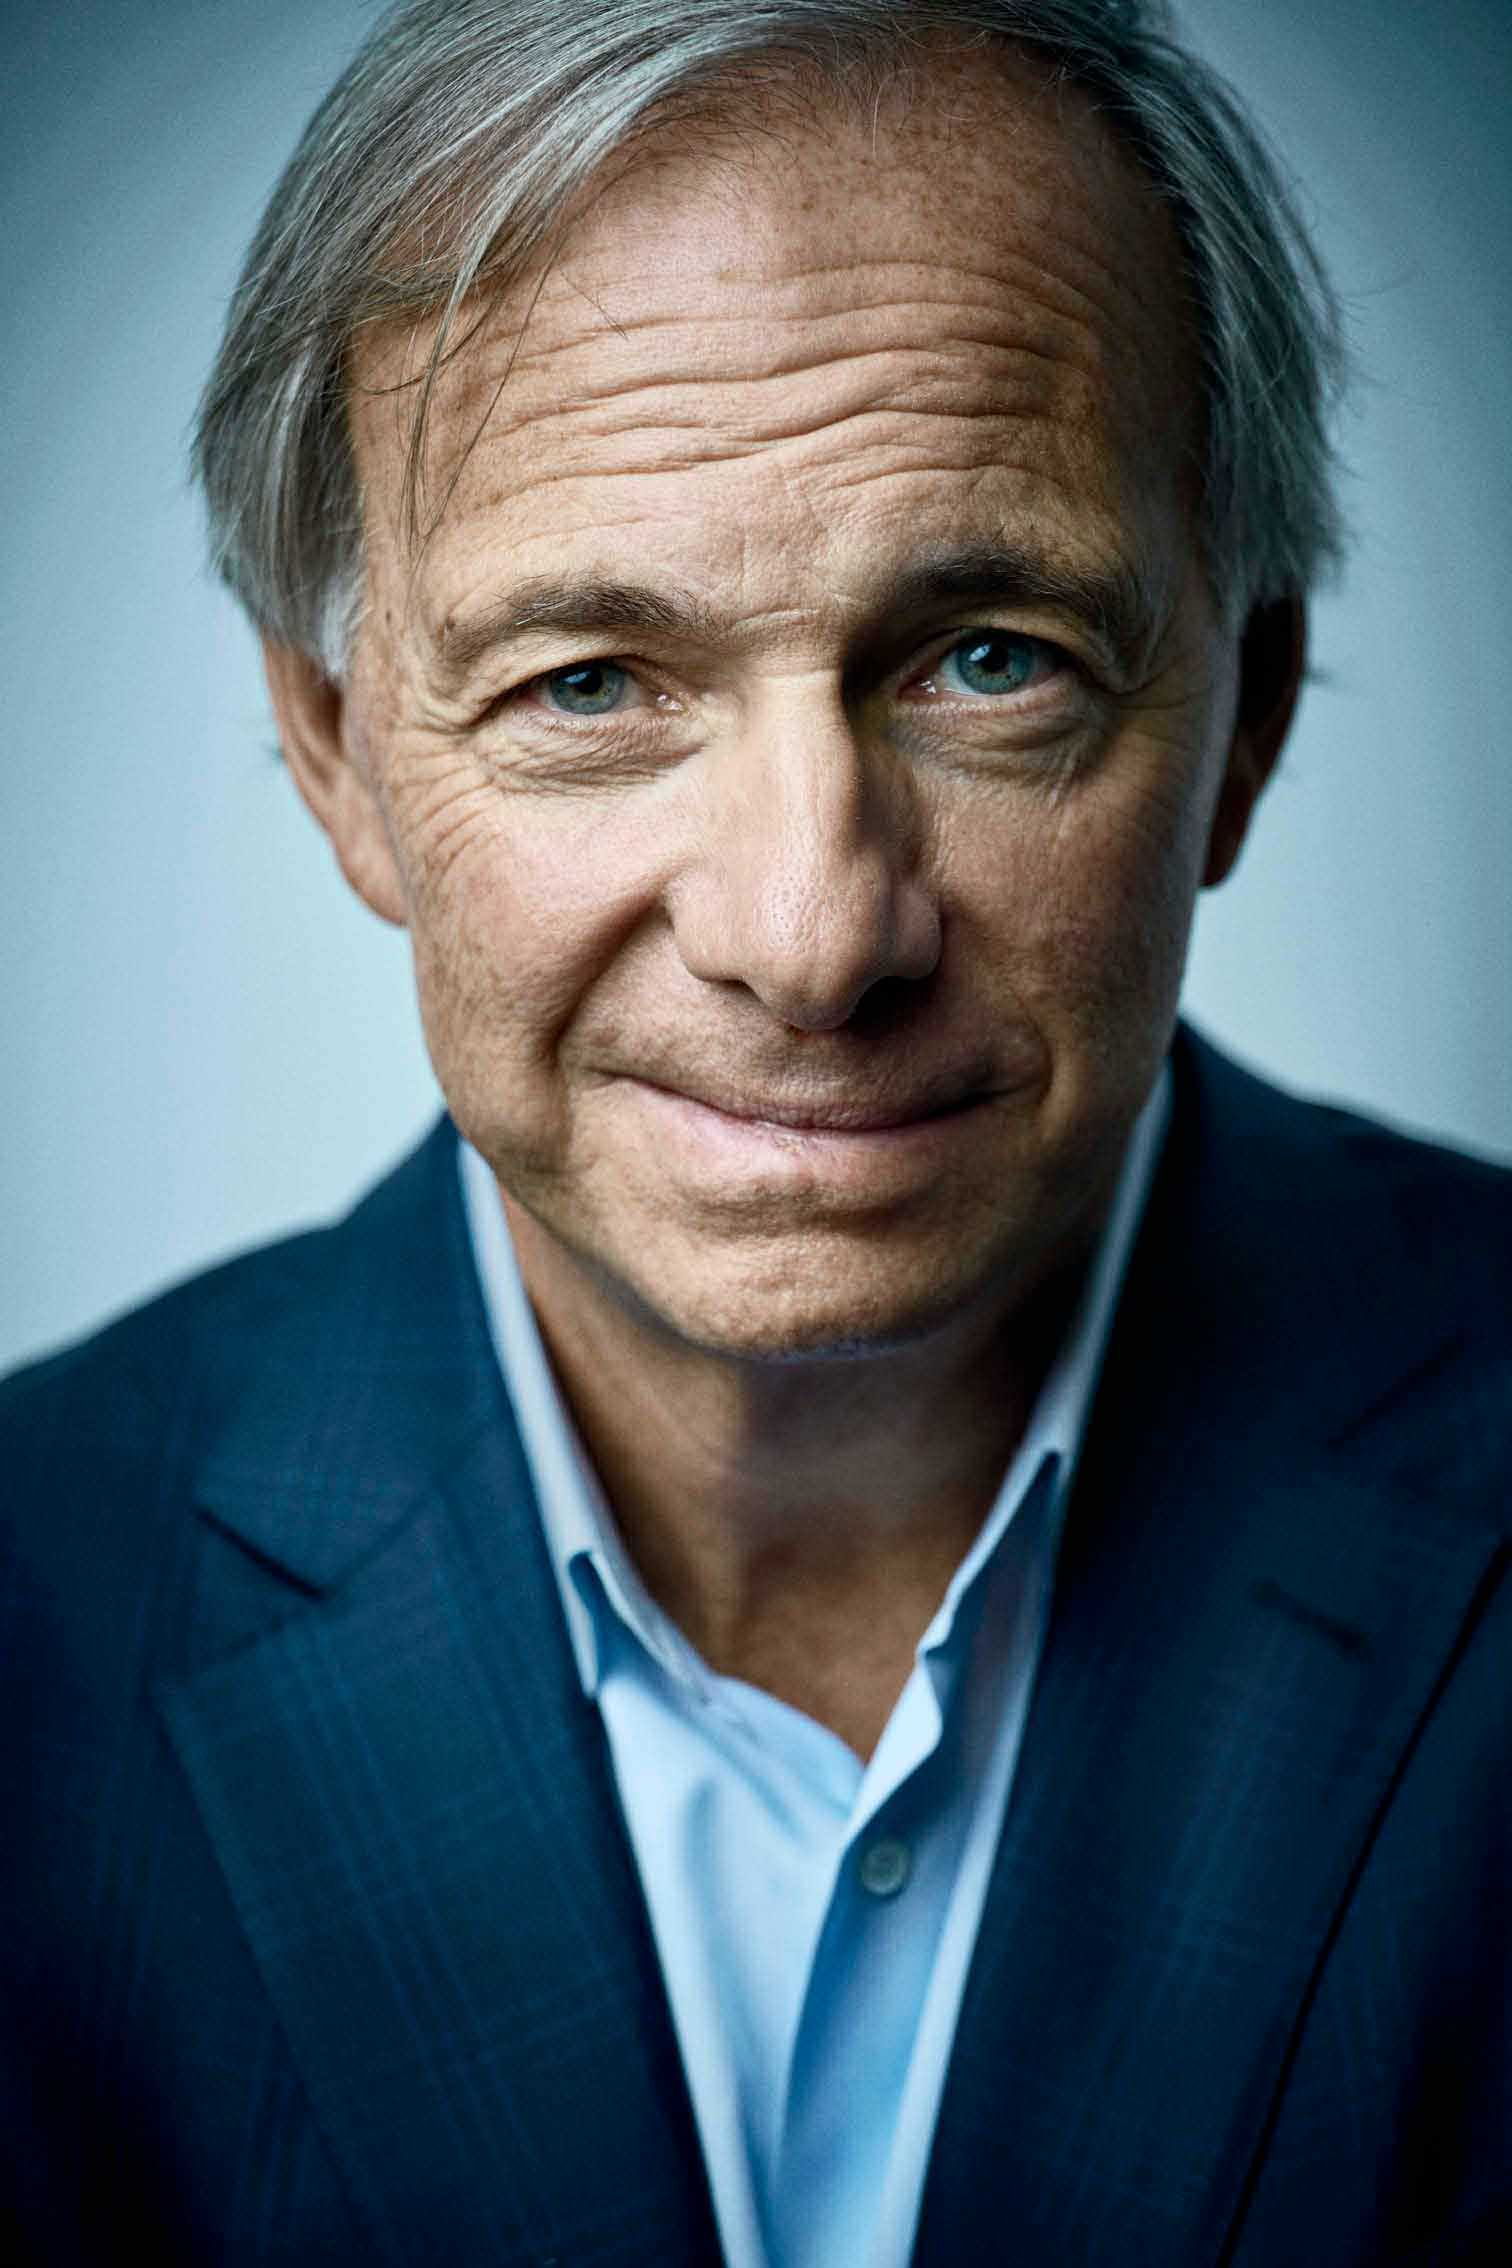 RayDalio Investor Bridgewater Associates Finance